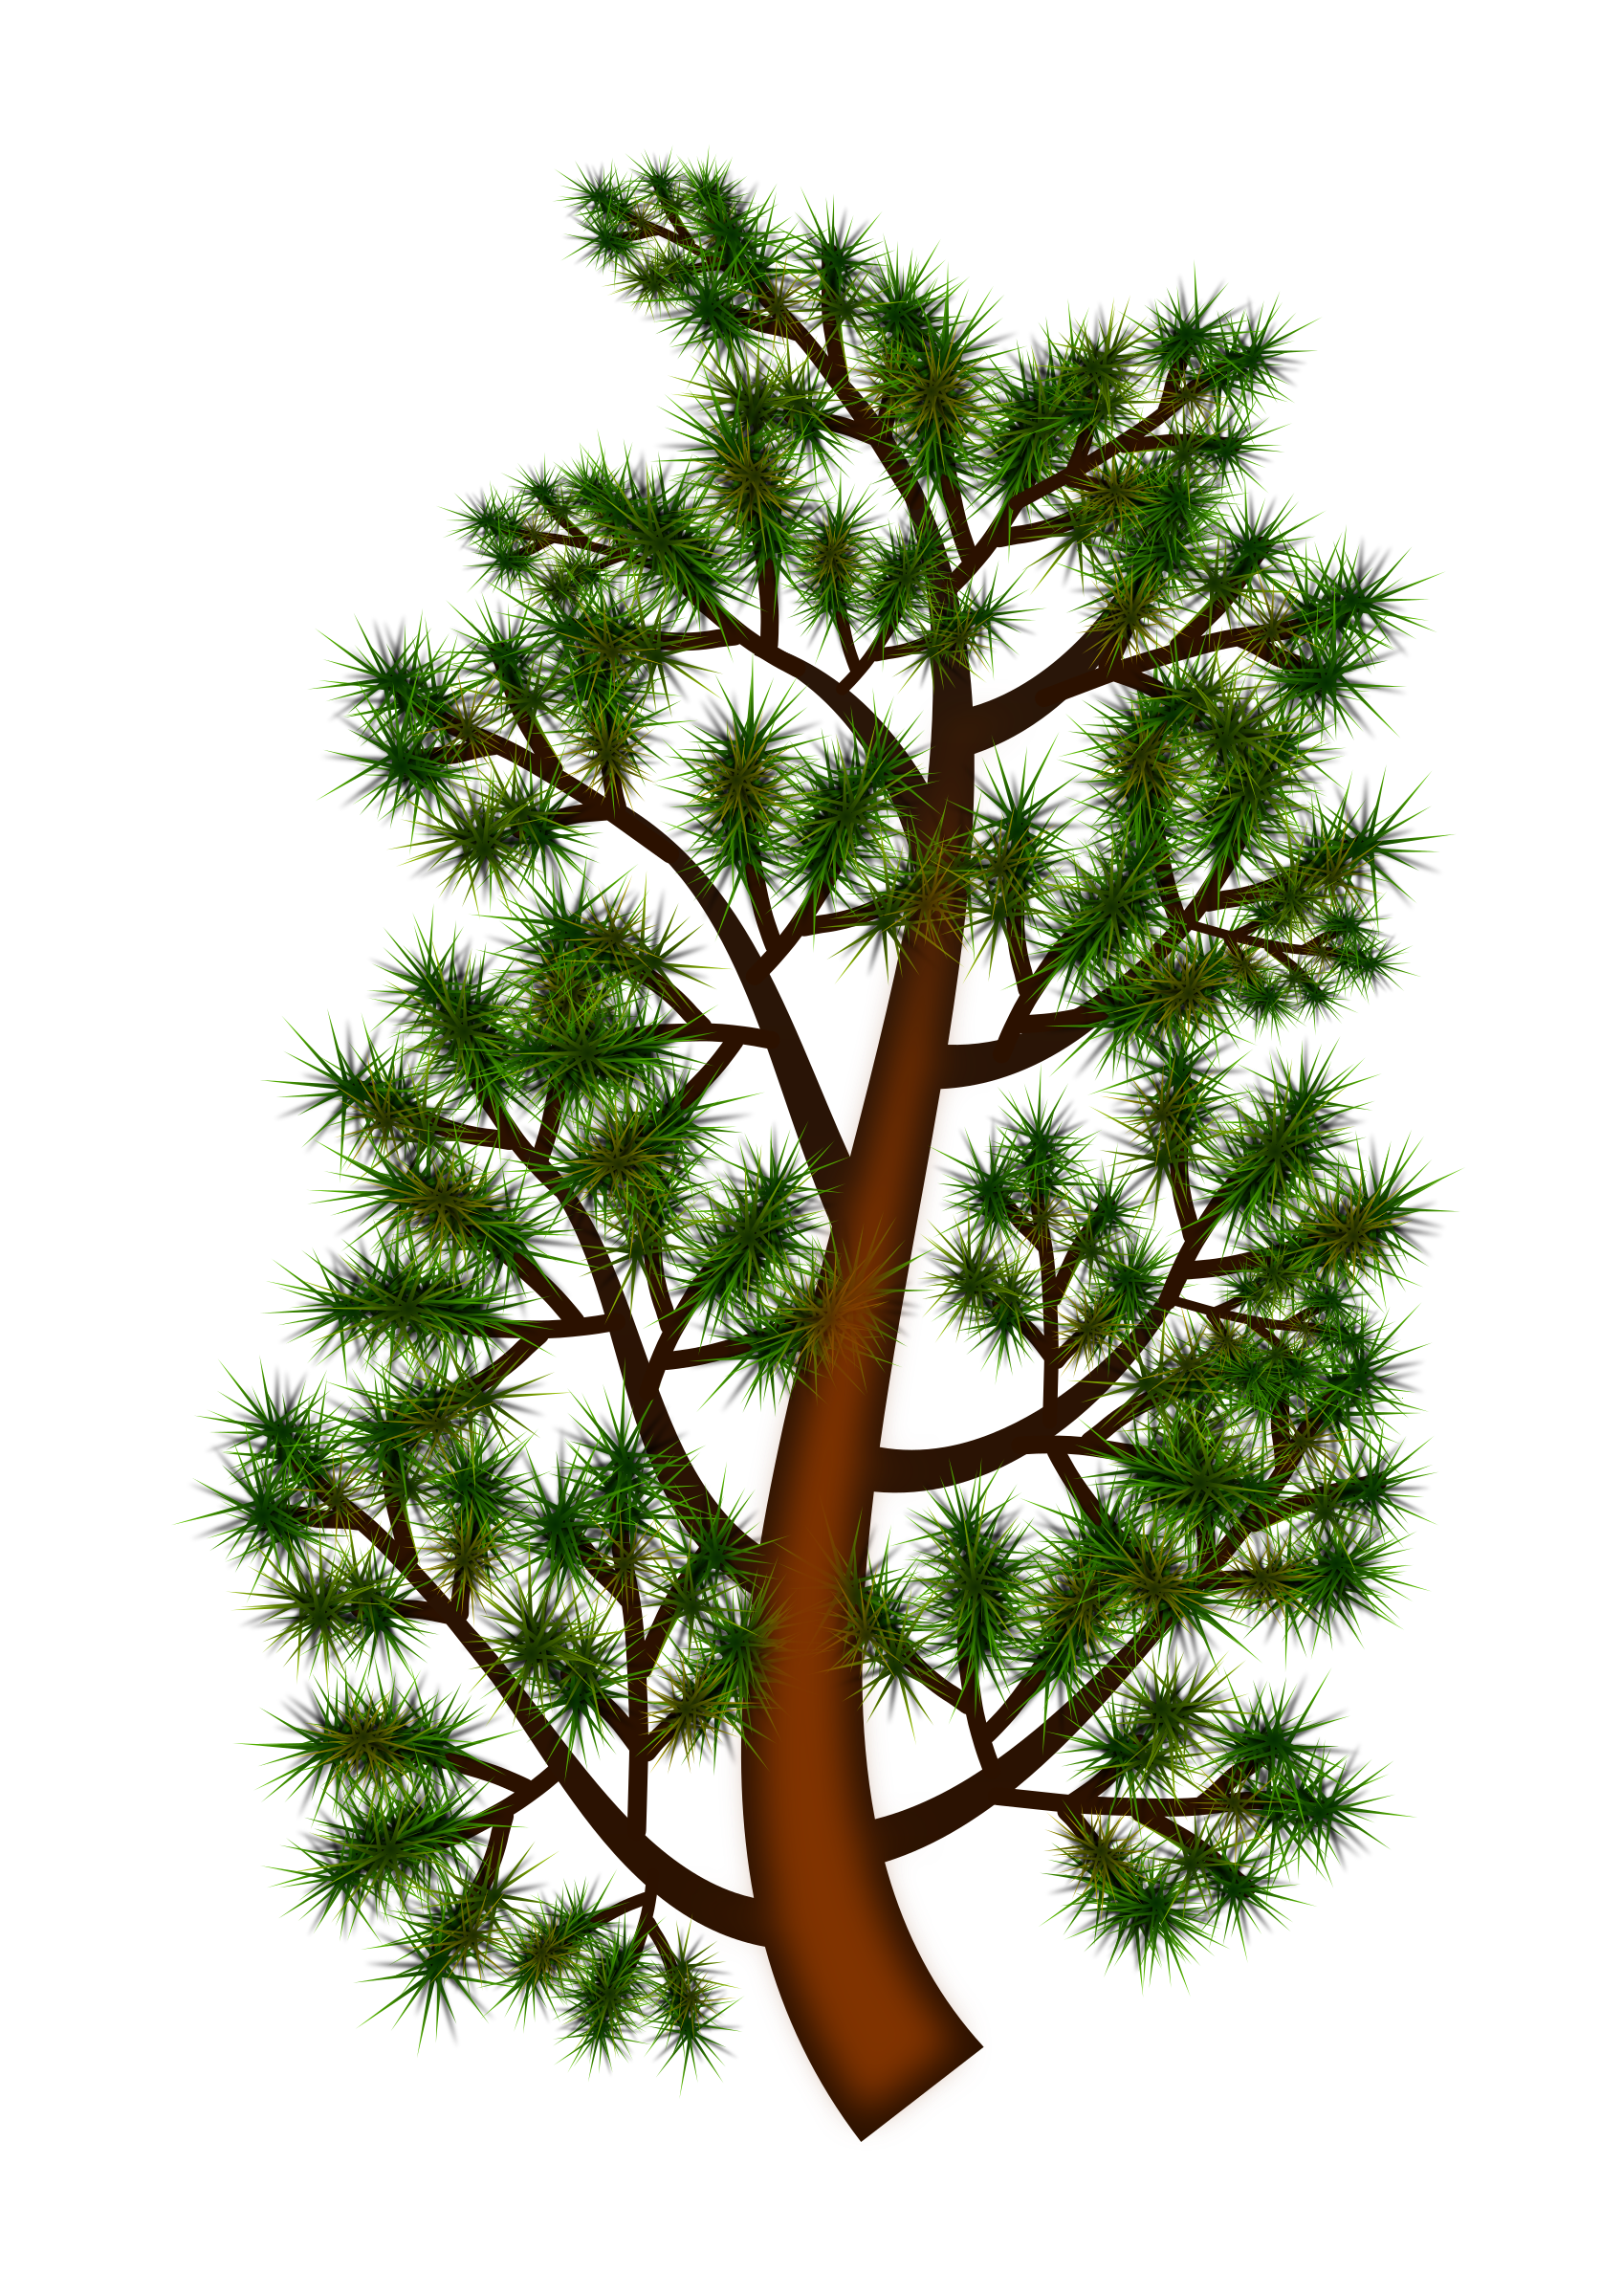 Clipart forest pine tree. Branch big image png